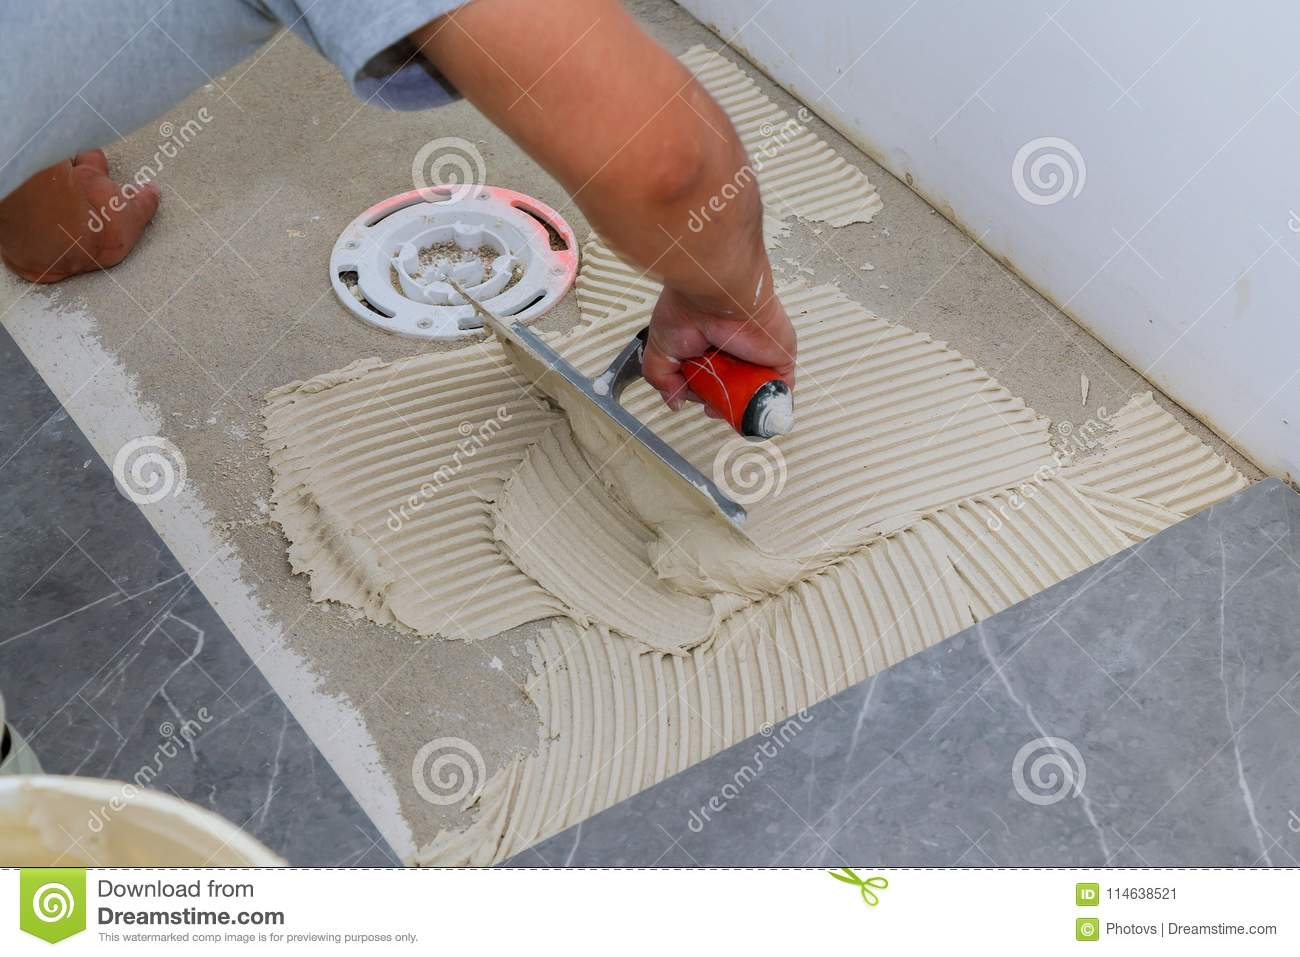 Troweling Mortar Onto A Concrete Floor In Preparation For Floor Tile